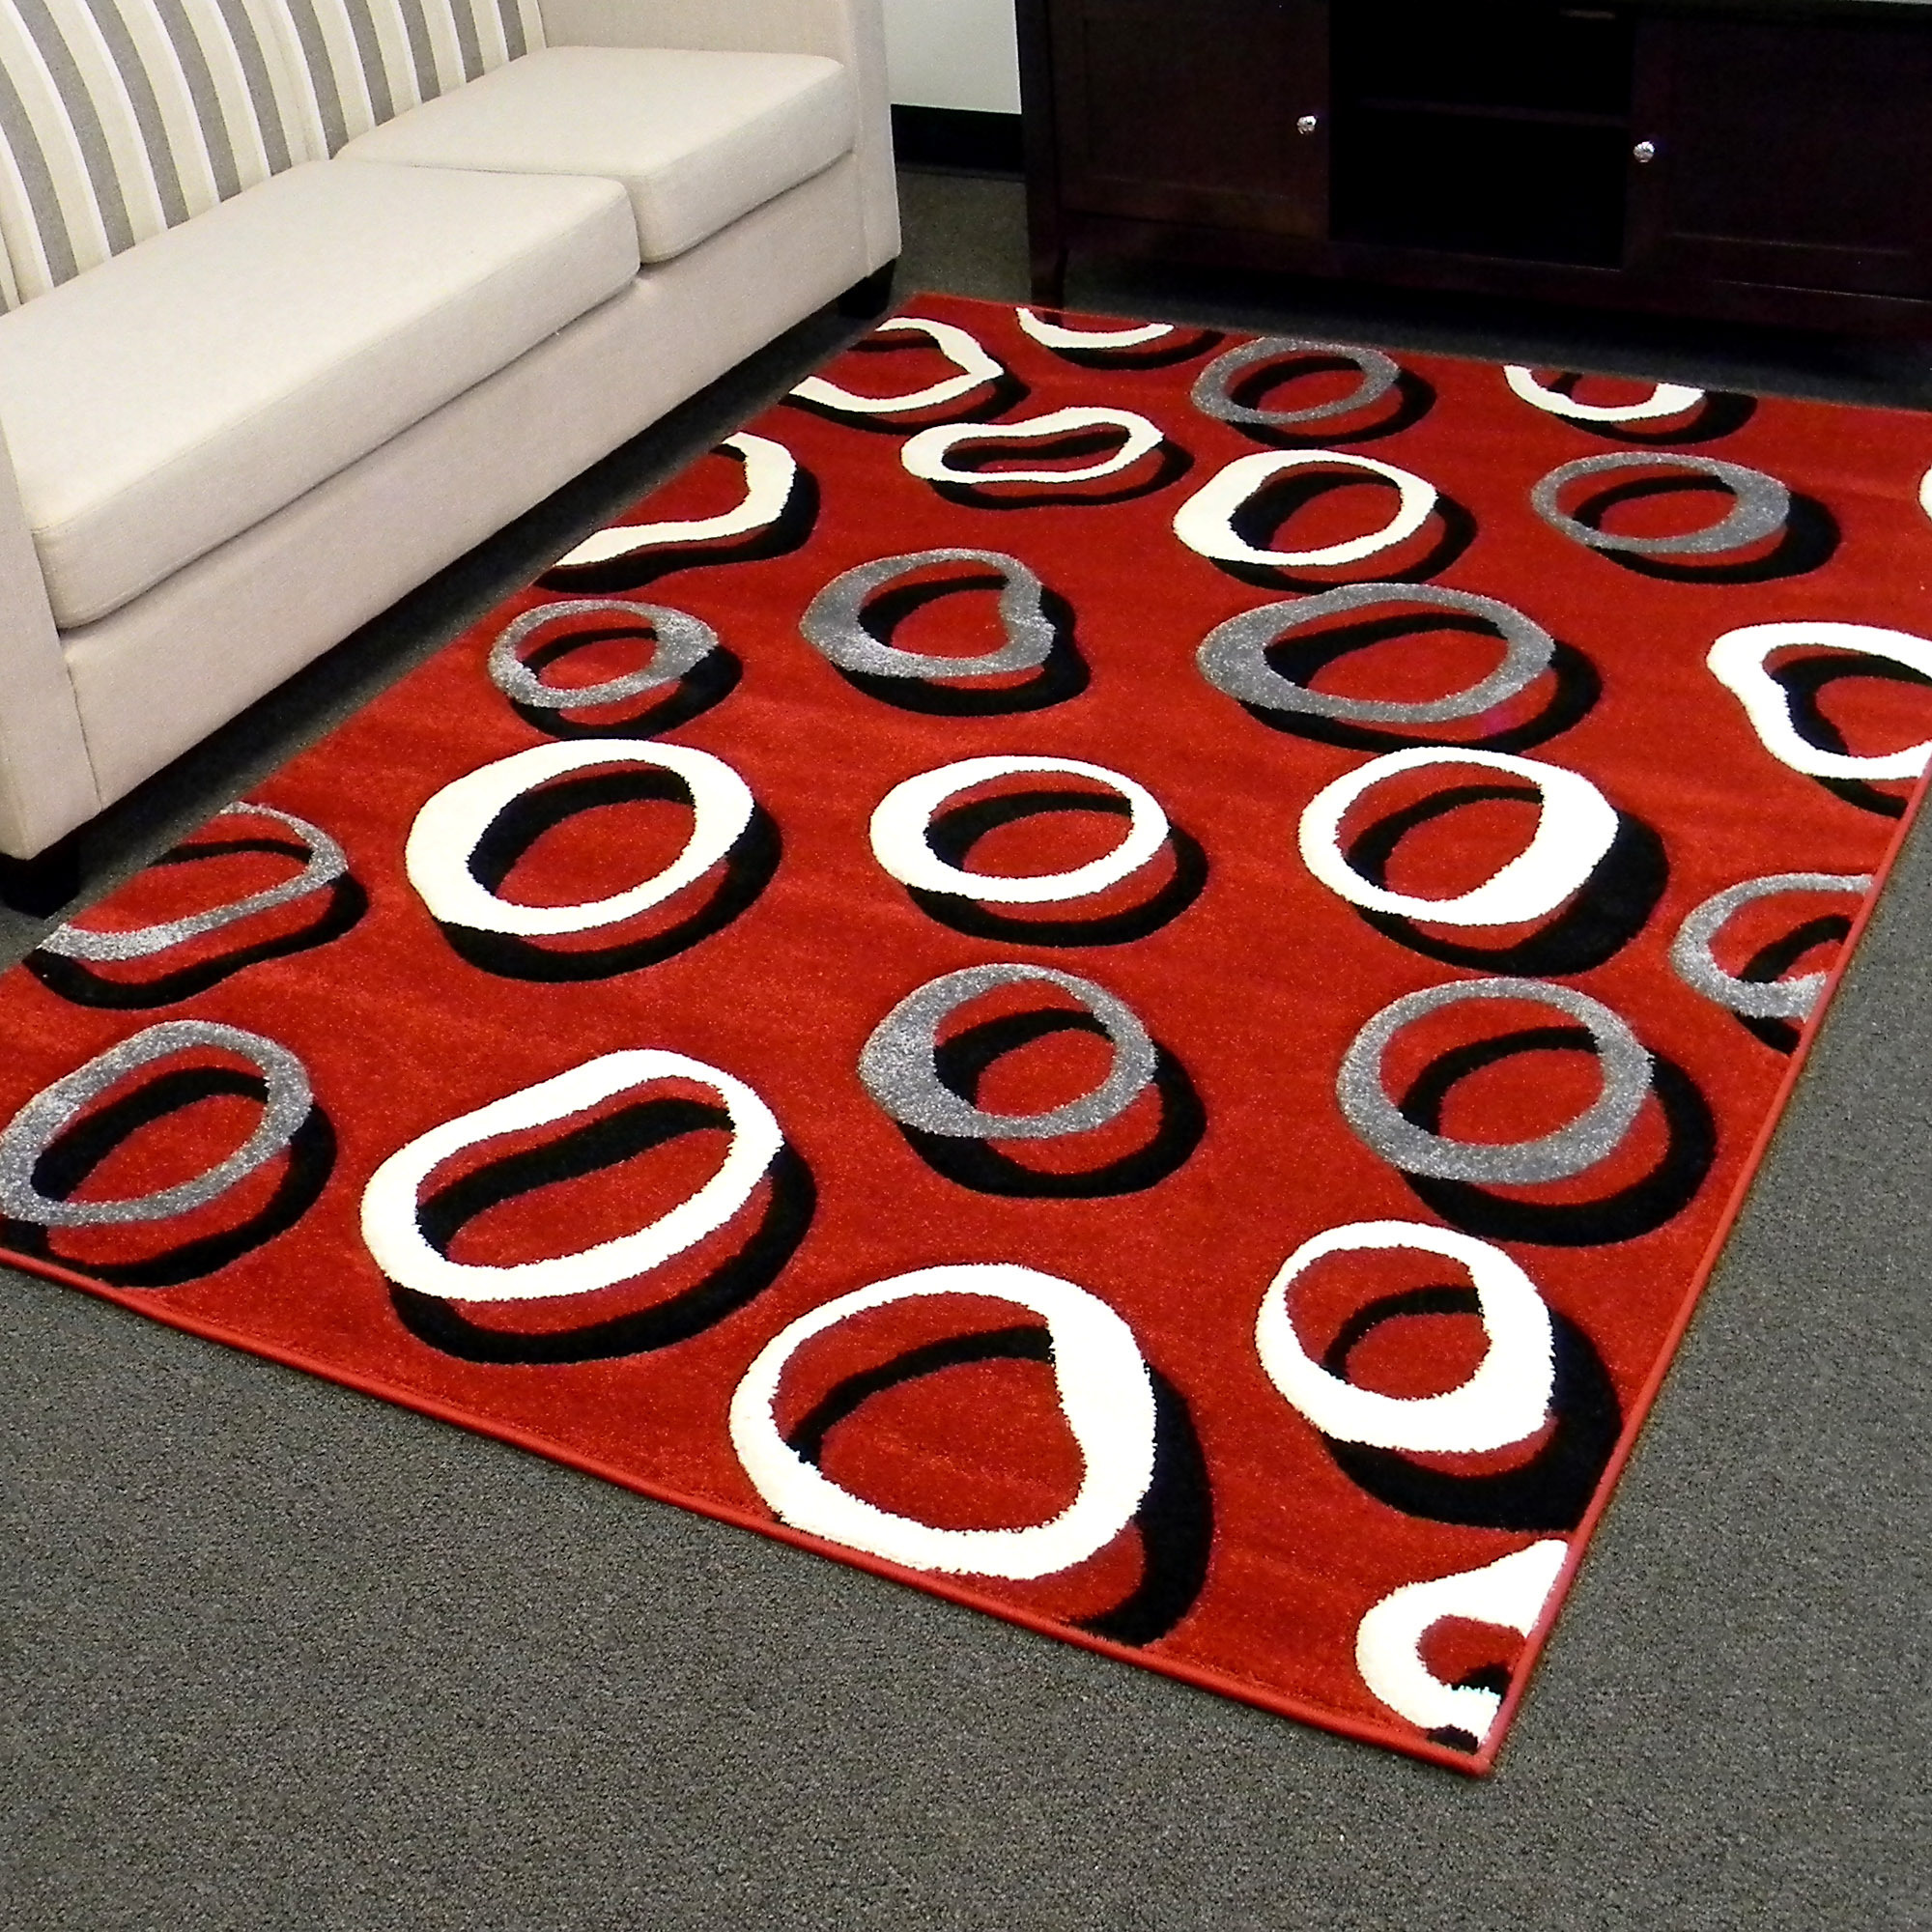 Cool 5x7 Area Rugs In Red With Black Grey And White Circle Motif For Floor  Decor